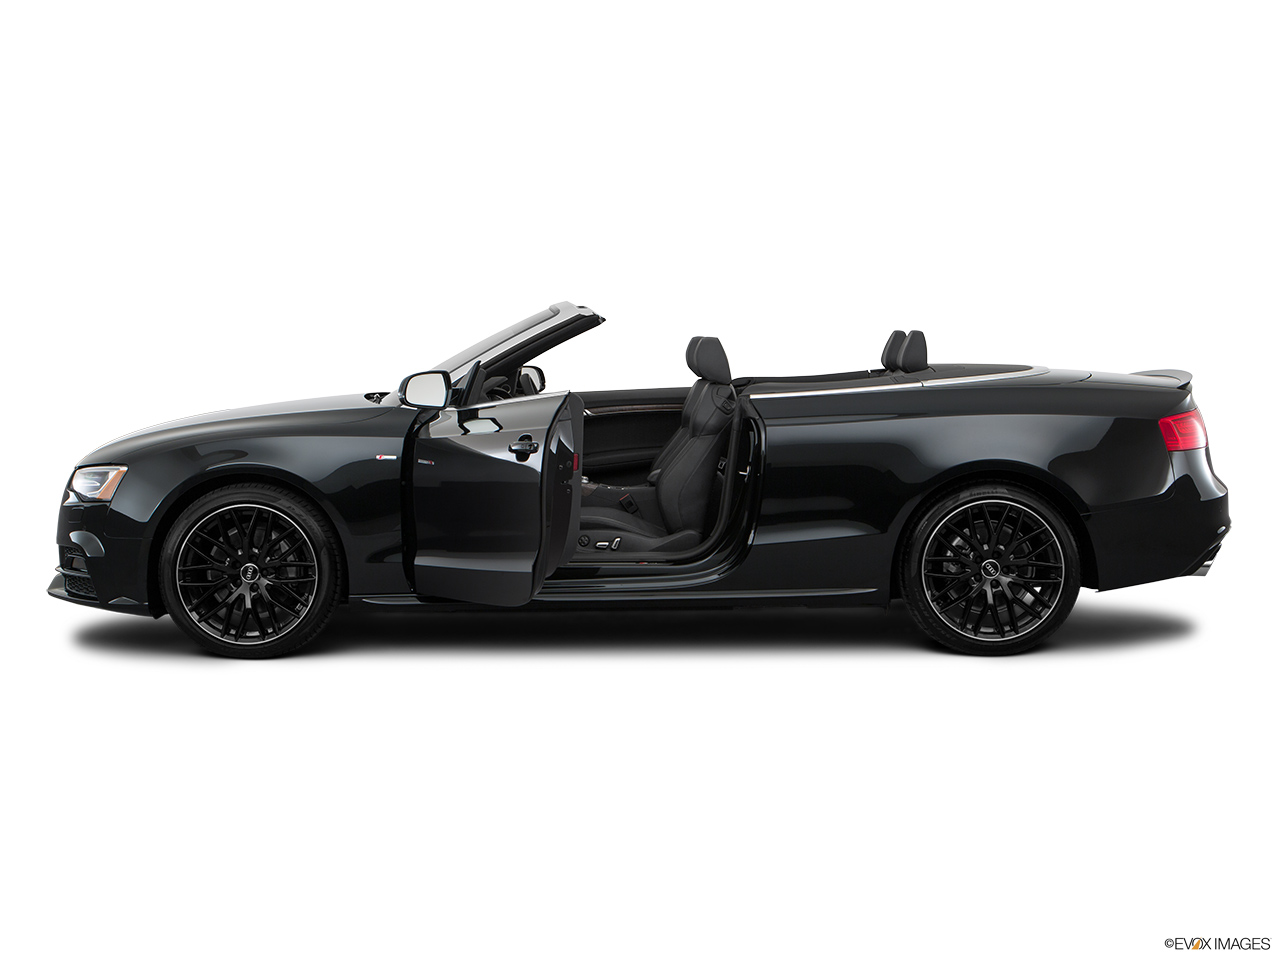 2017 Audi A5 Sport Cabriolet 2.0 TFSI Driver's side profile with drivers side door open.